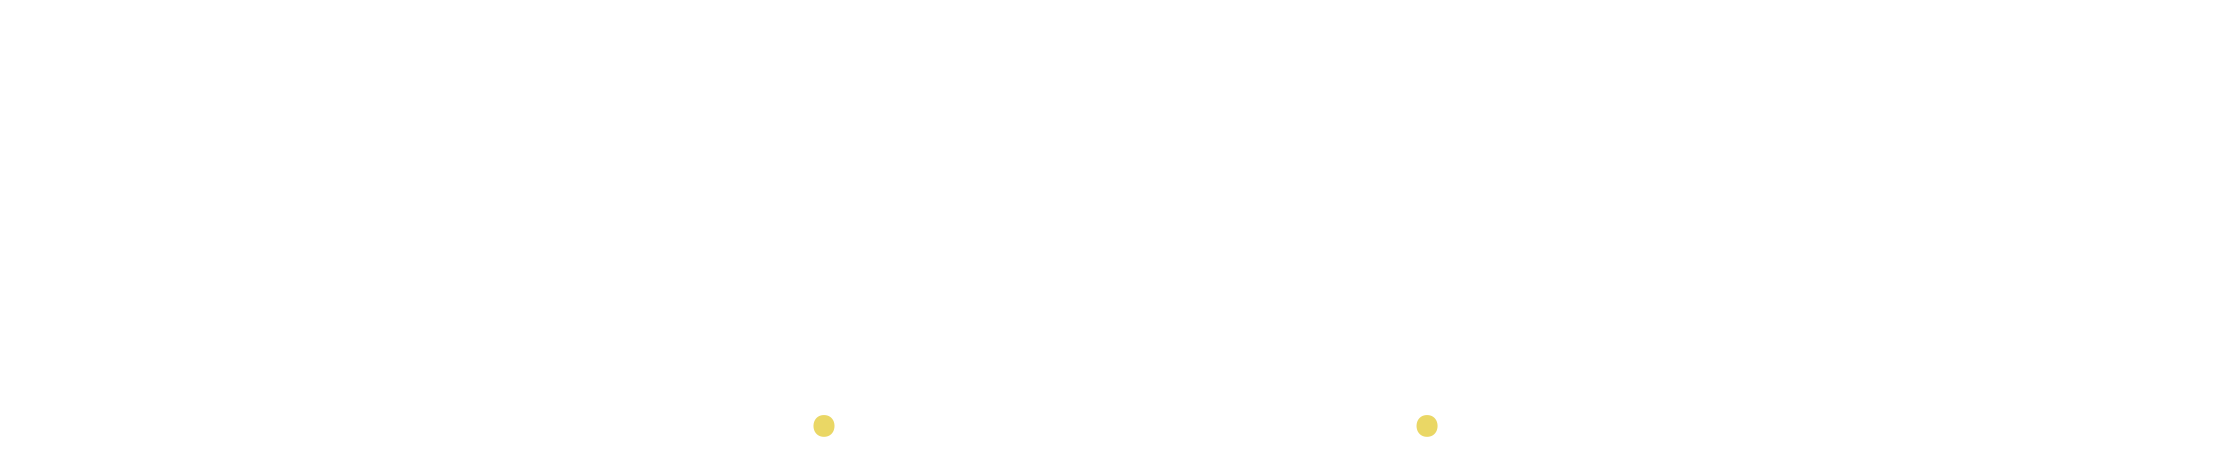 Comedy Central presents Another Frickin' Festival